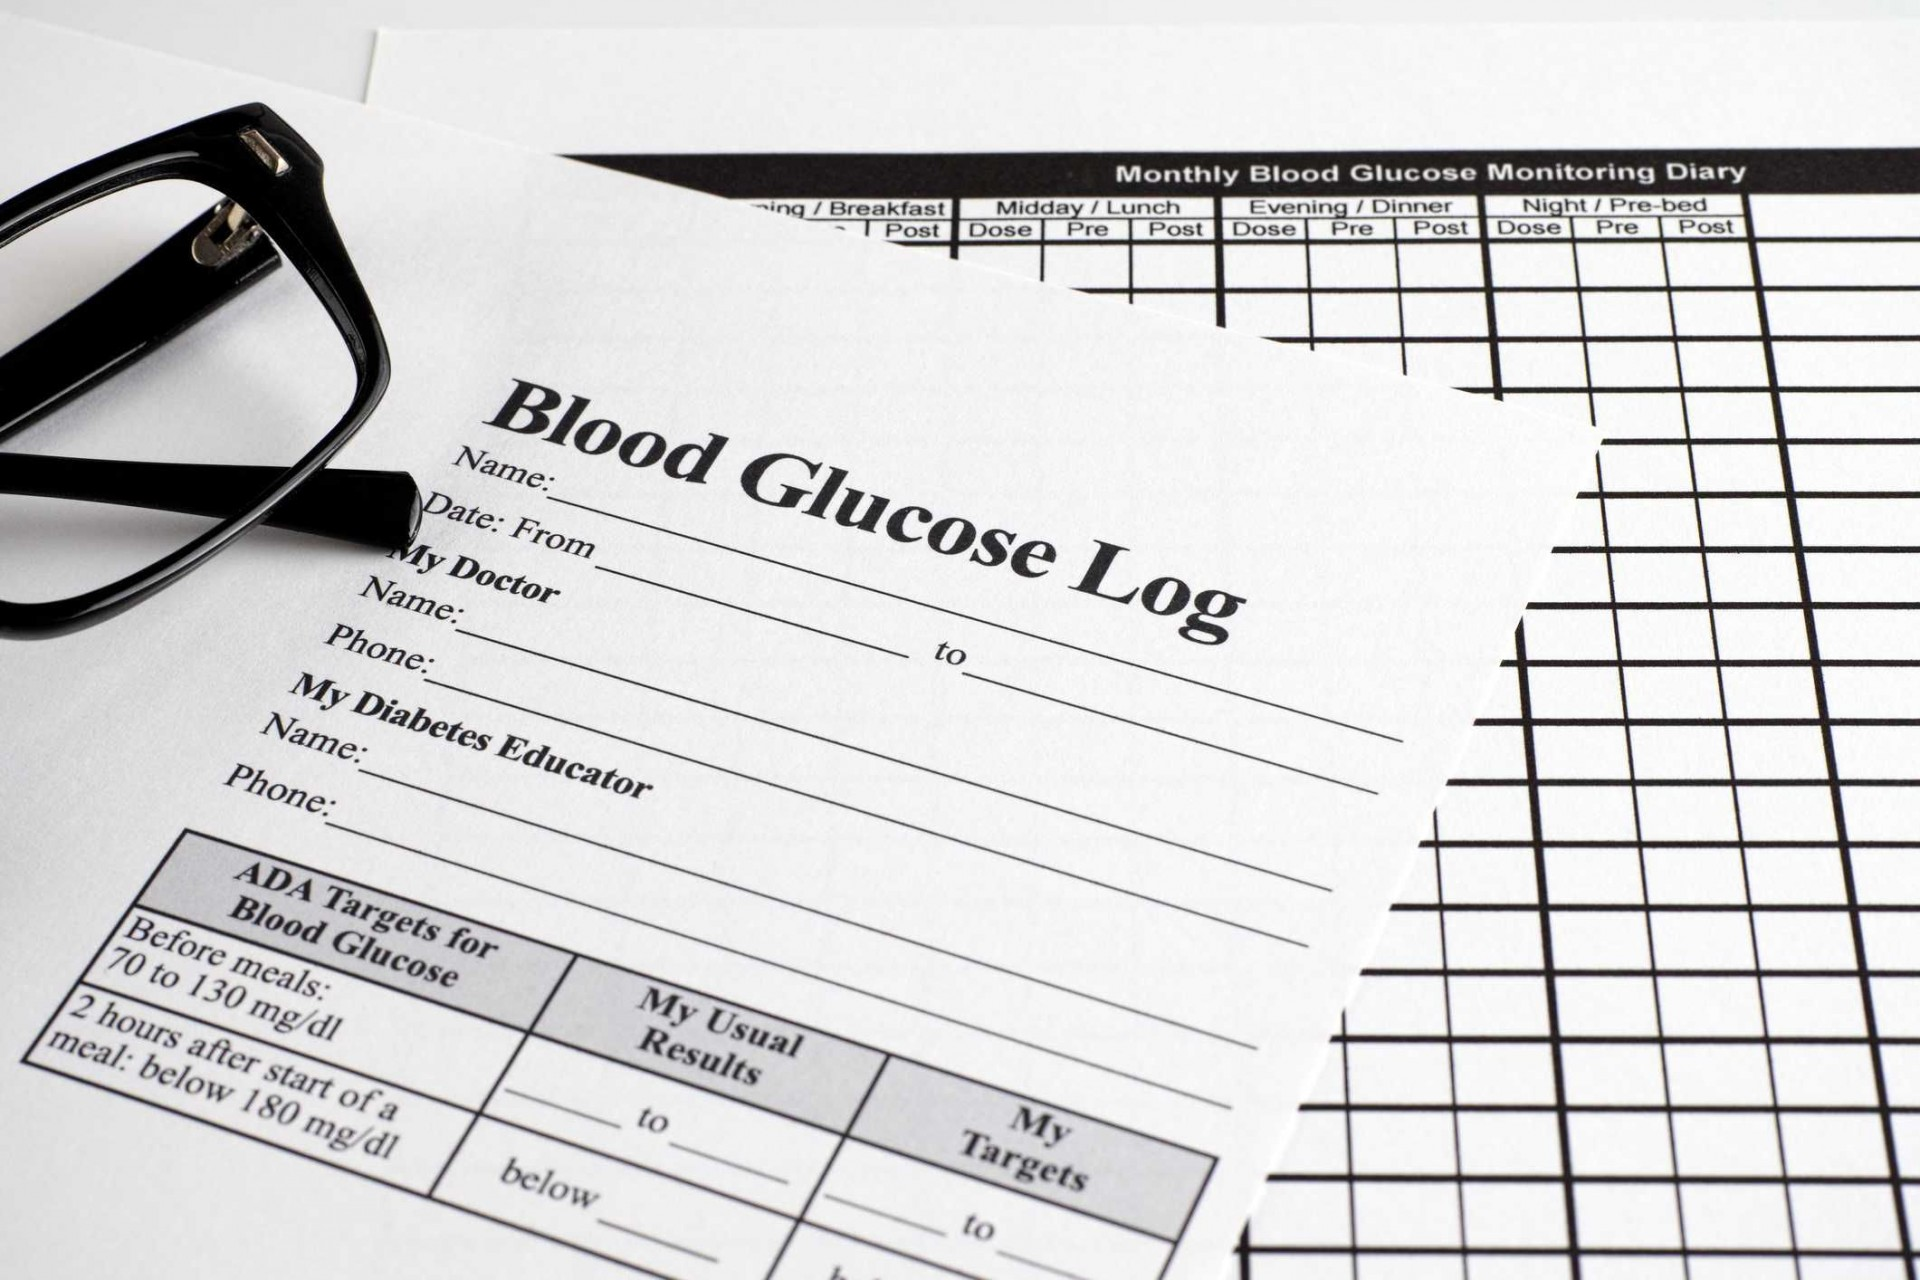 008 Dreaded Free Blood Sugar Log Template Pdf Design 1920